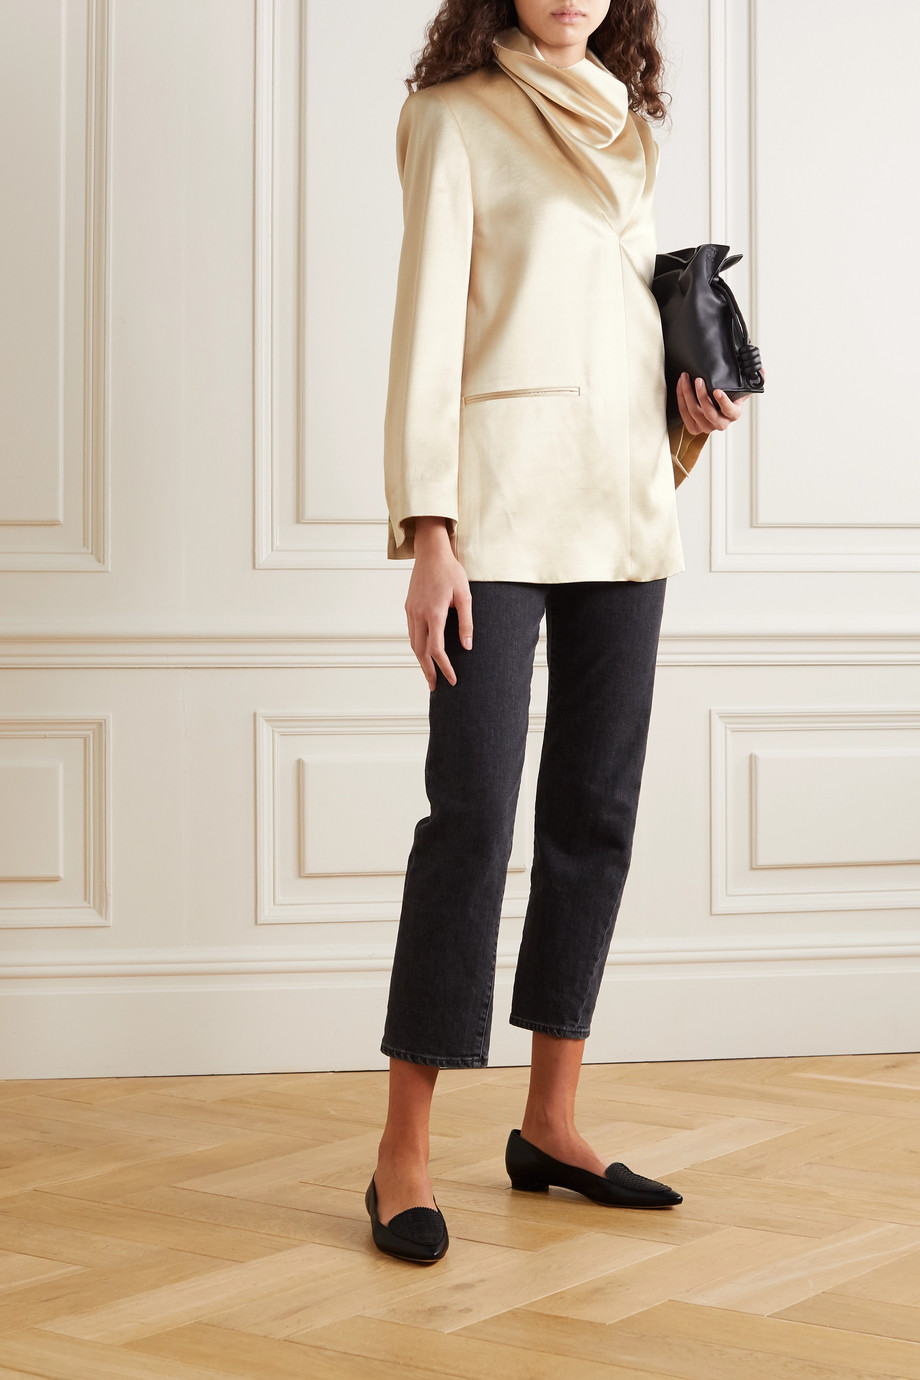 Totême Apremont draped turtleneck satin blazer